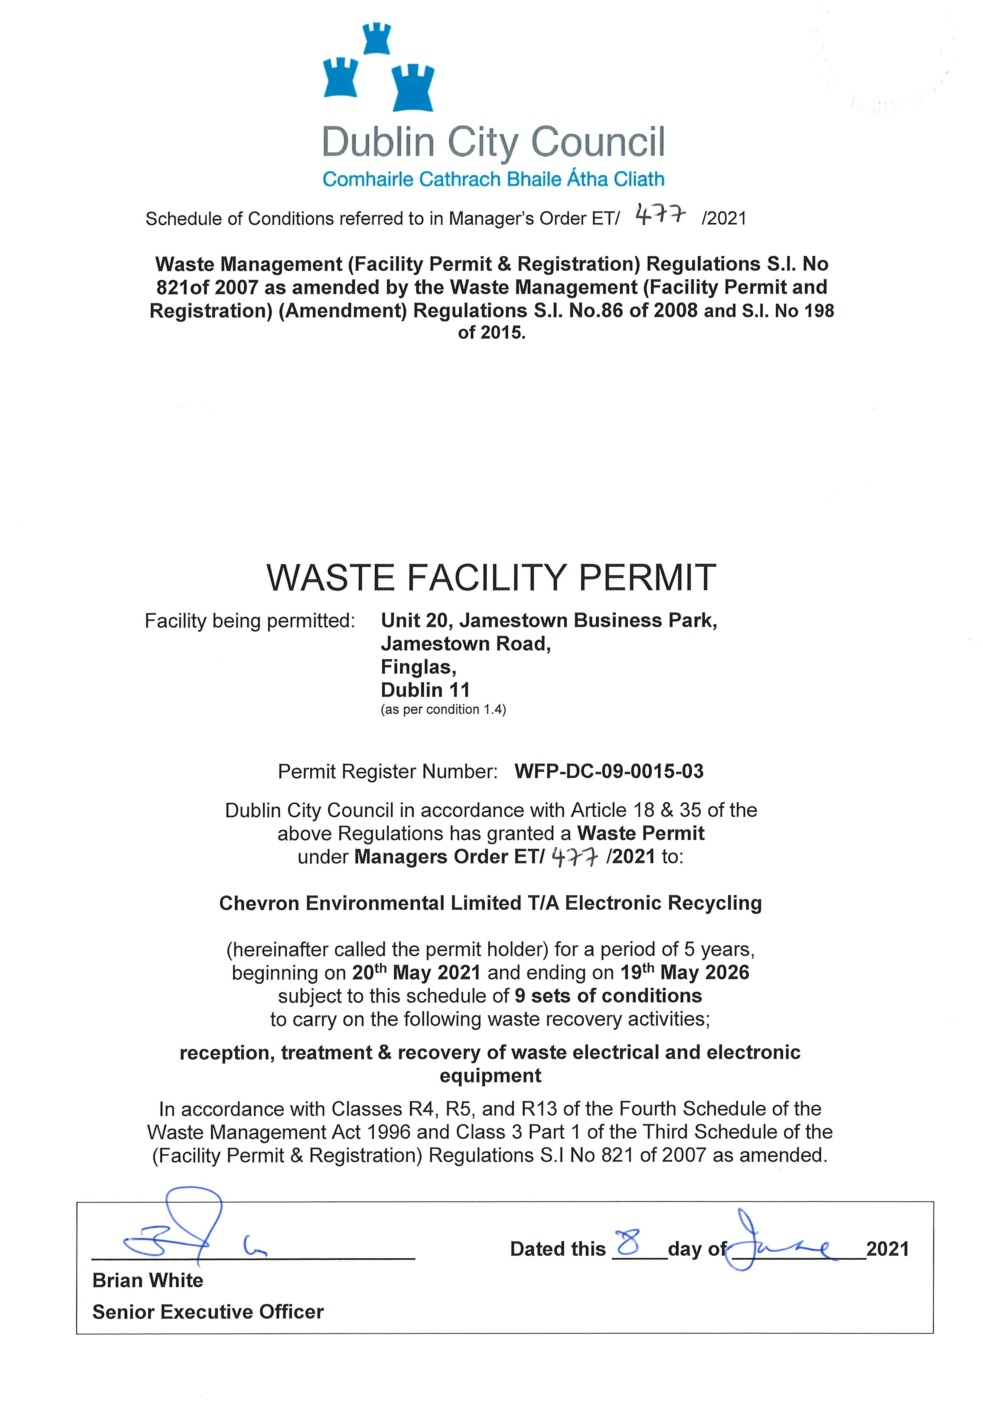 er-permit-2021-1st-page-wfp-dc-09-0015-03